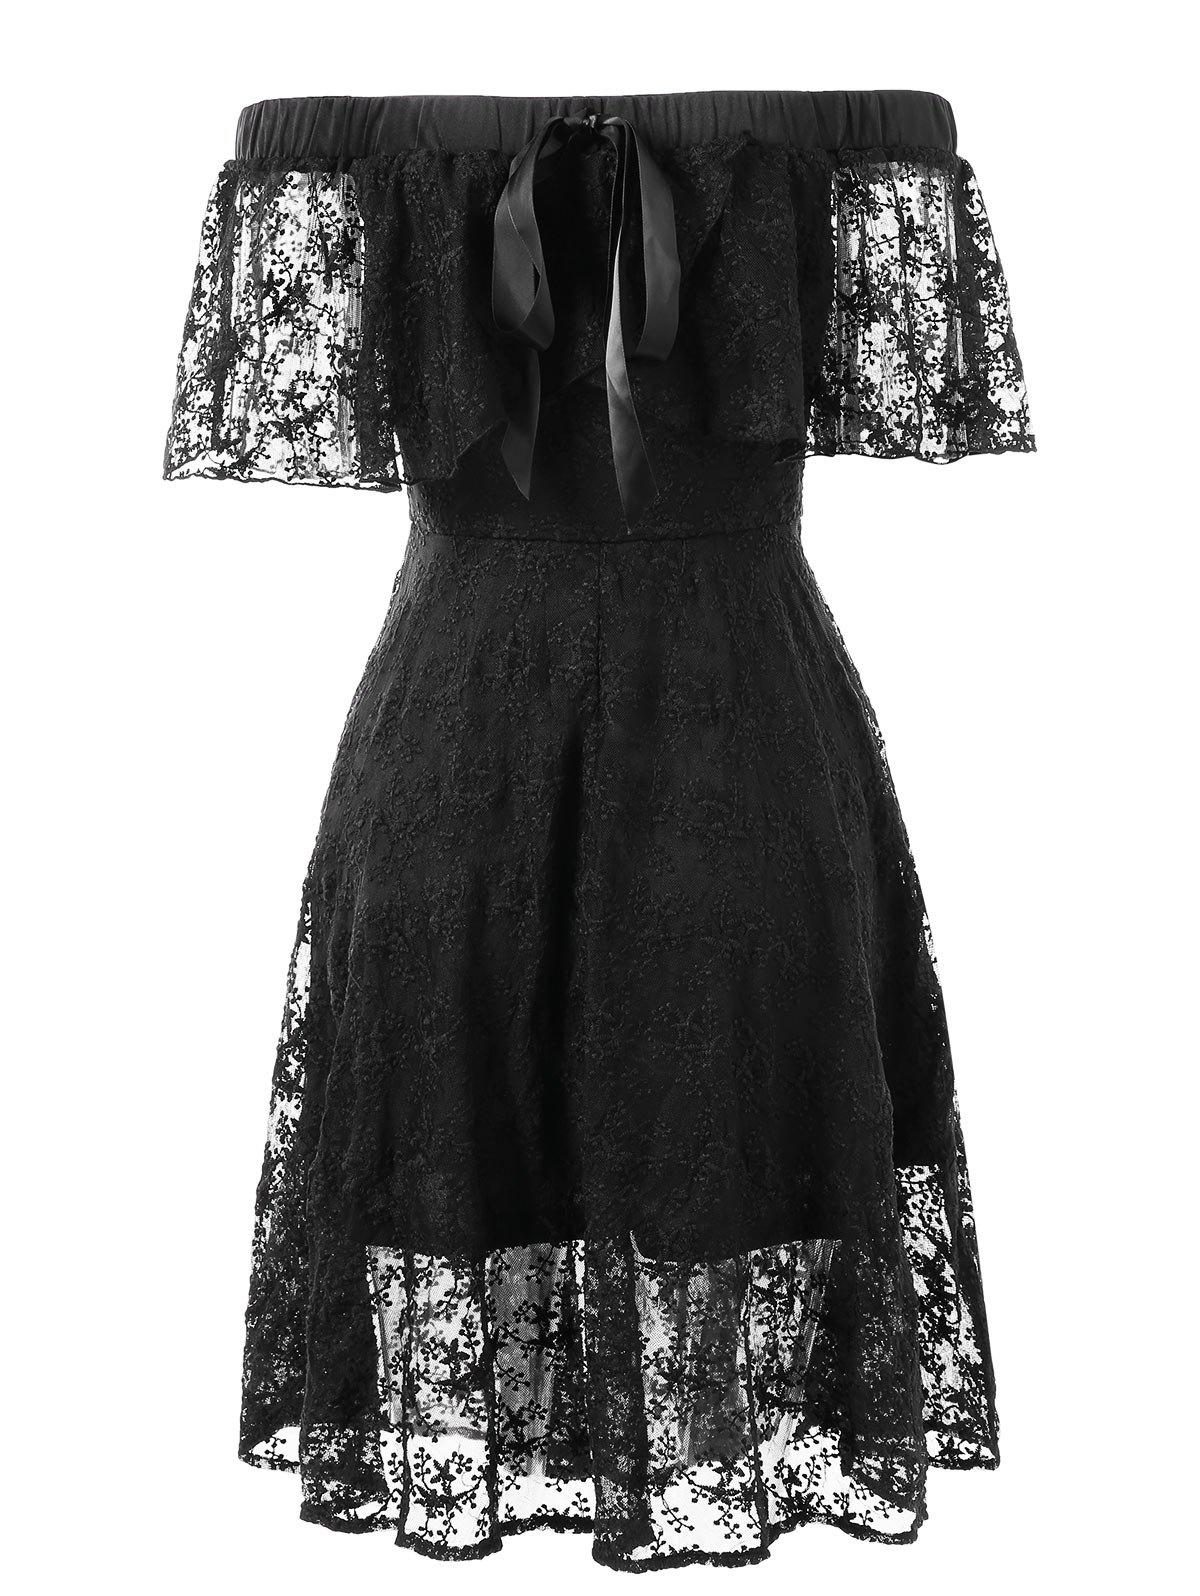 2018 Bare Shoulder Flounce Lace Dress BLACK L In Lace Dresses Online ...